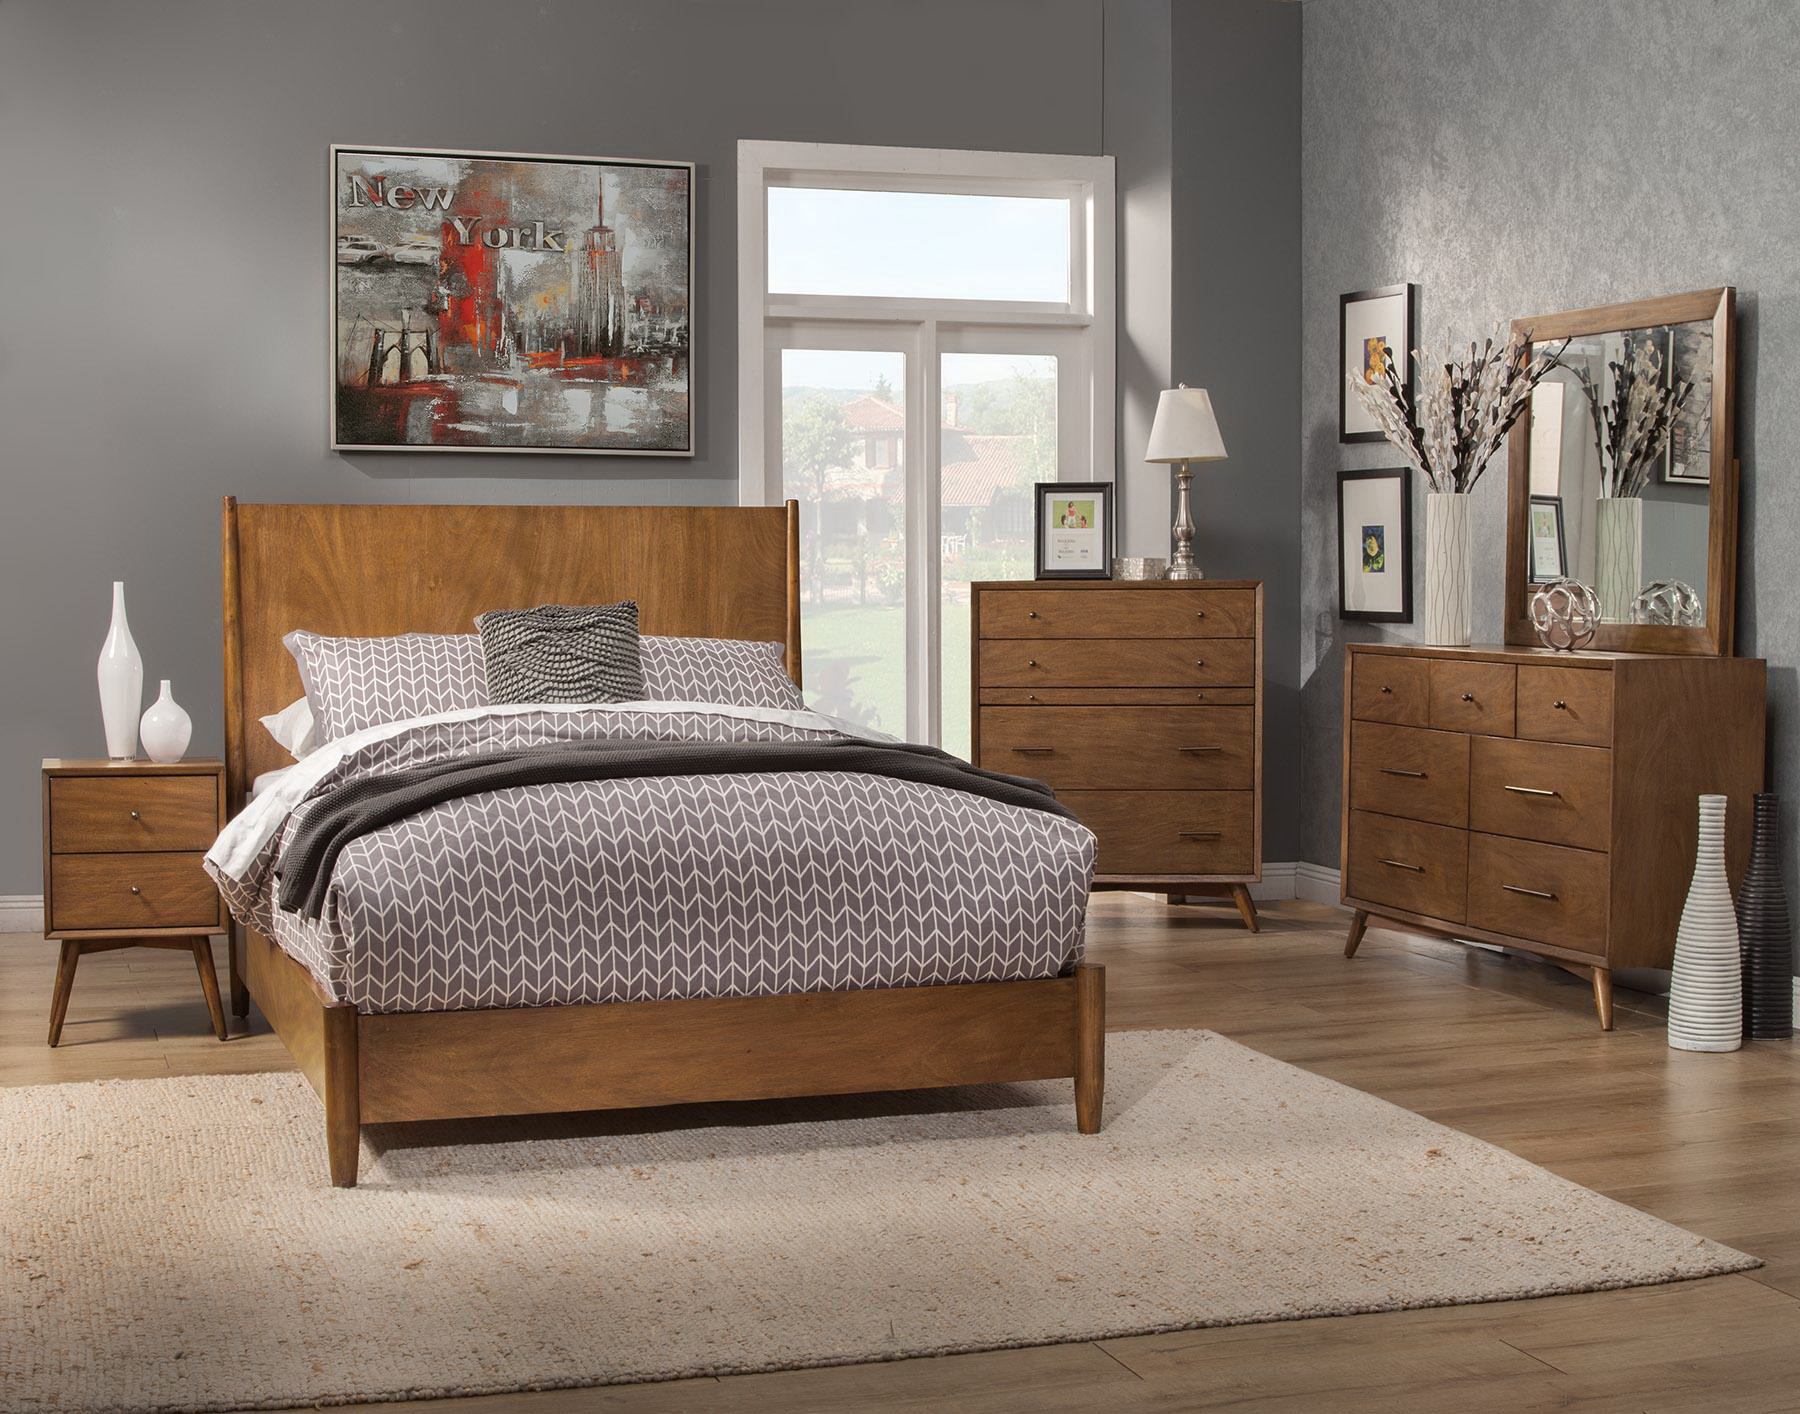 ALP-966 FLYNN BEDROOM SET